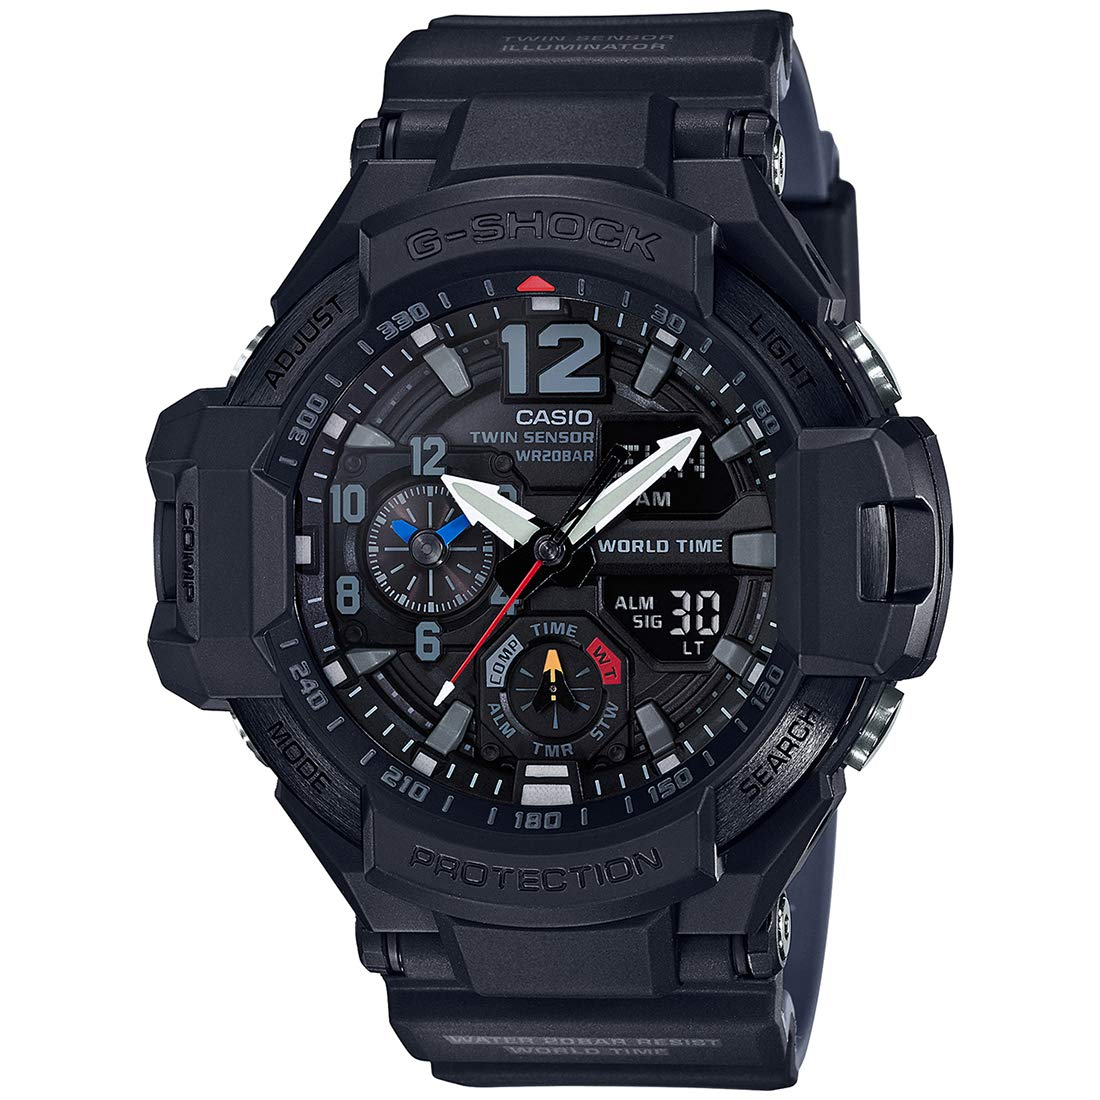 2e2335357c0 Buy Casio G-Shock Analog-Digital Black Dial Men s Watch - GA-1100-1A1DR  (G815) Online at Low Prices in India - Amazon.in